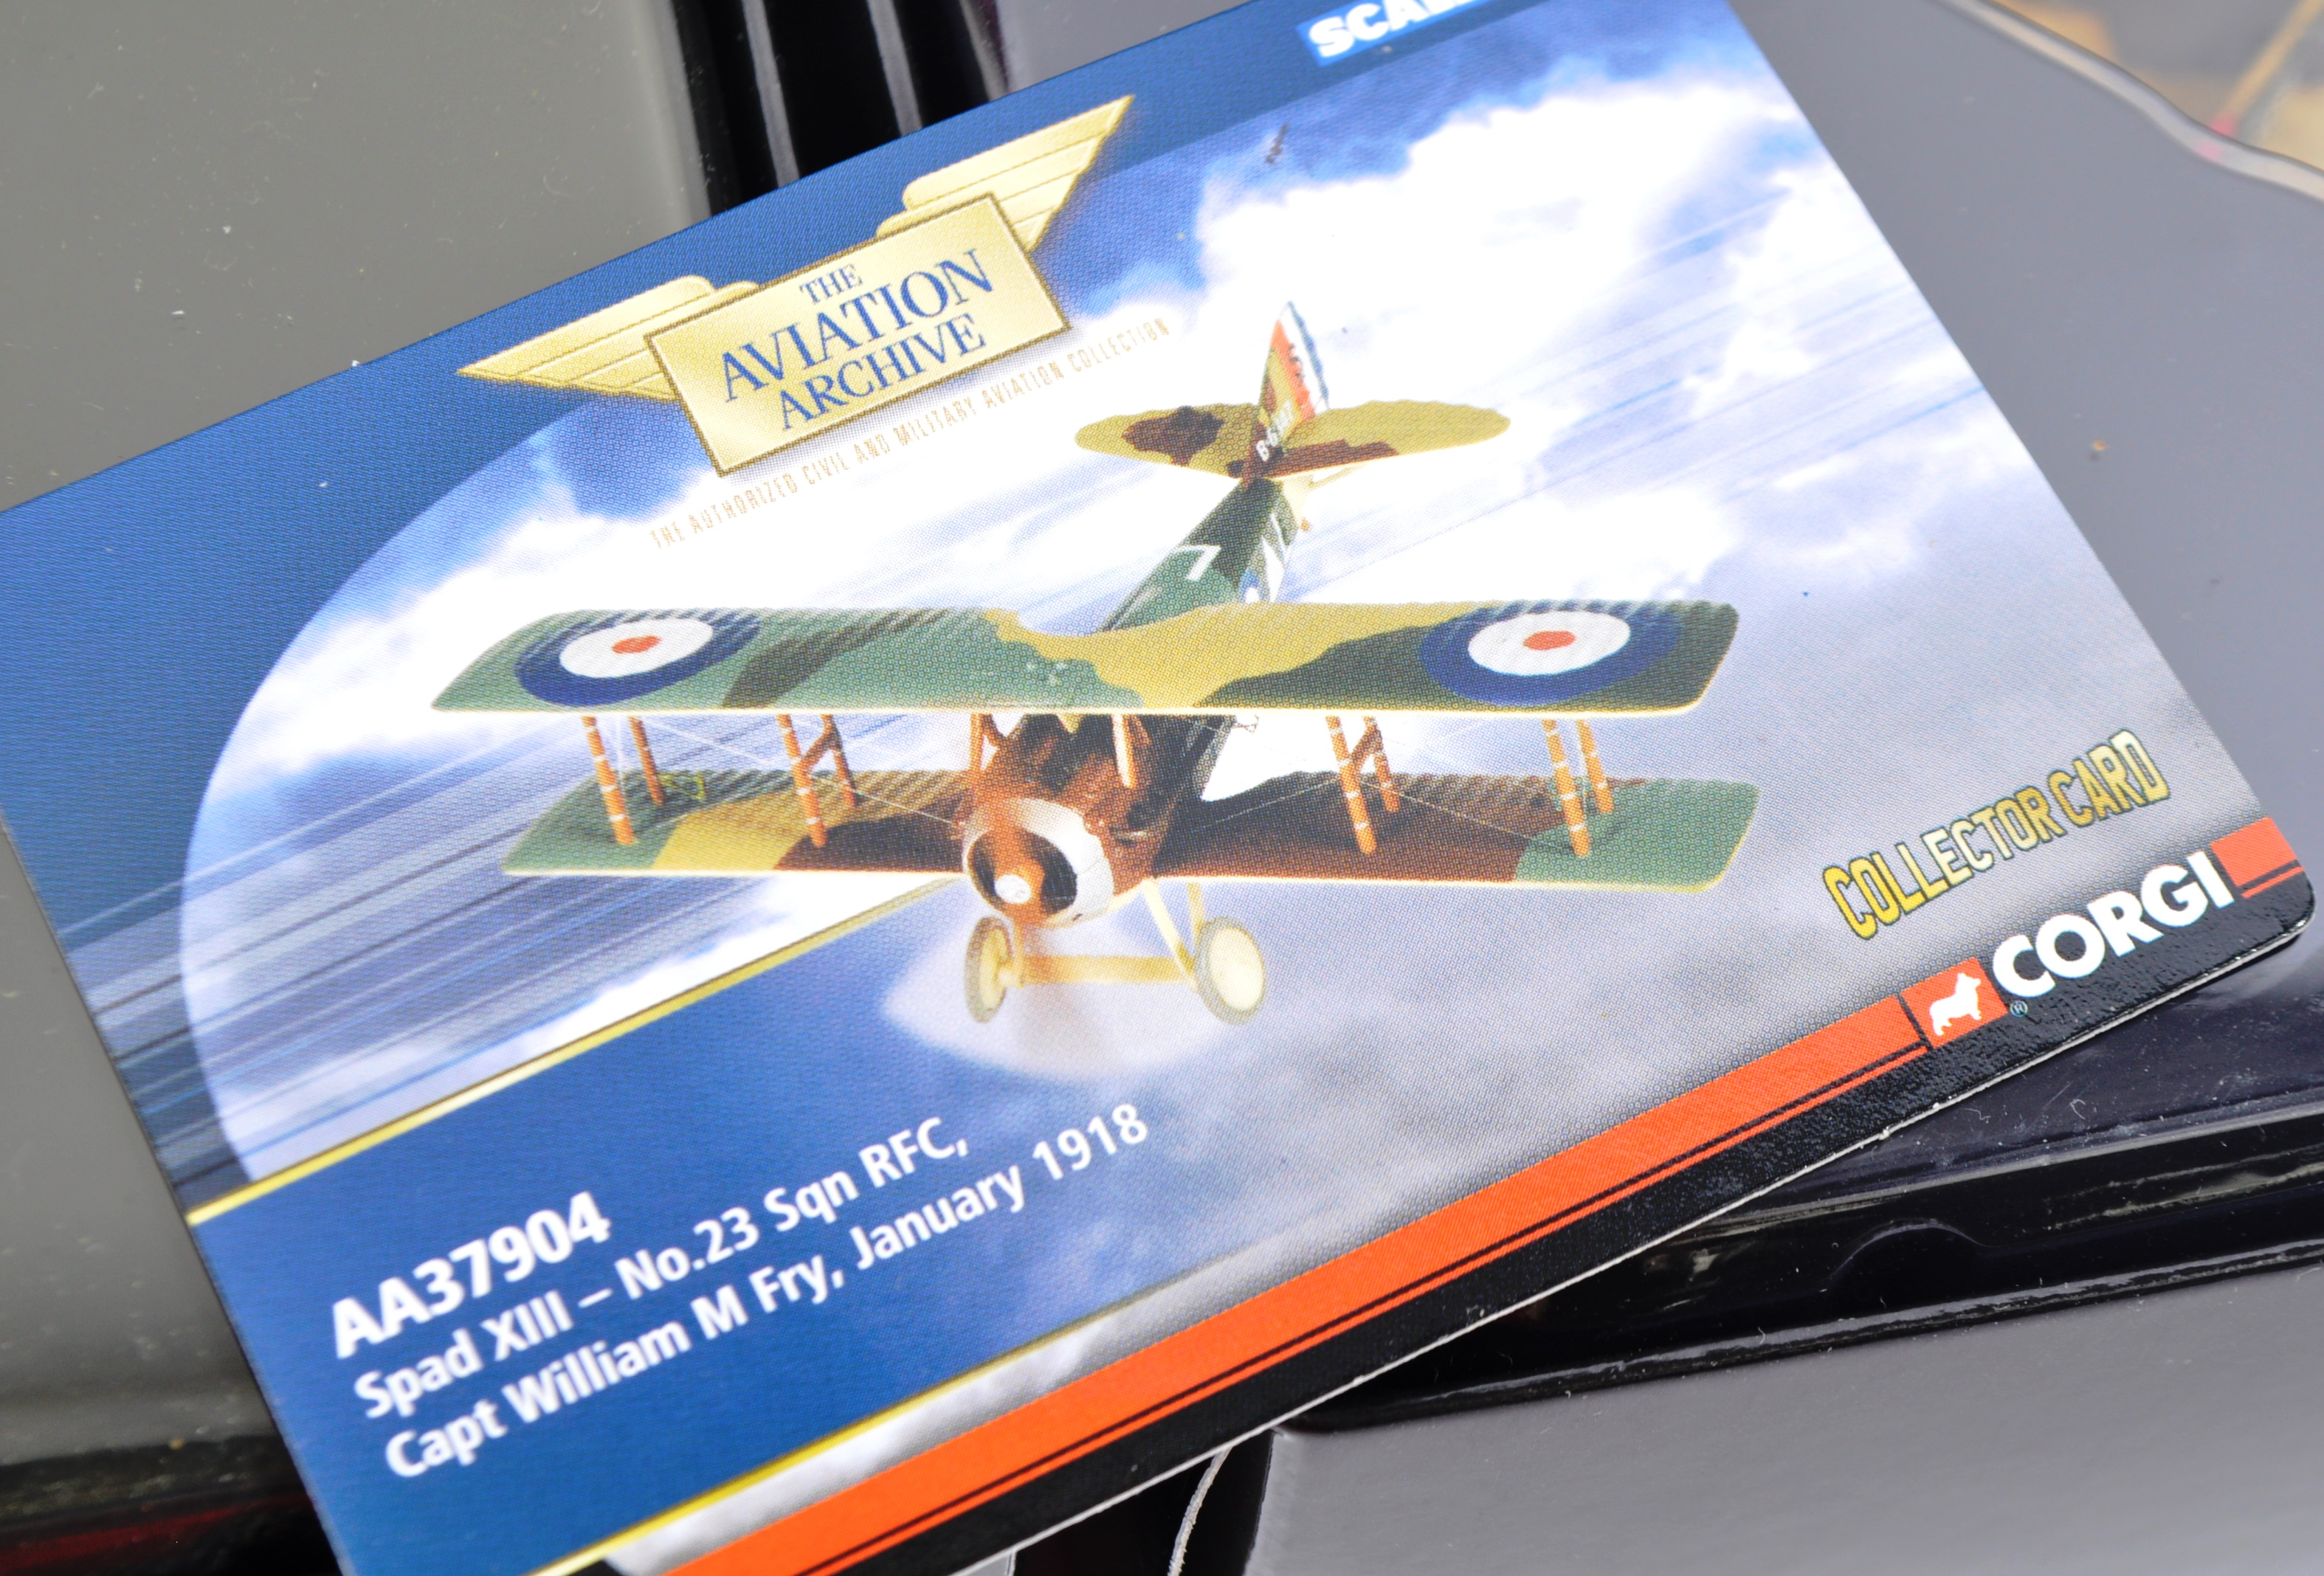 CORGI AVIATION ARCHIVE - TWO BOXED DIECAST MODELS - Image 4 of 6